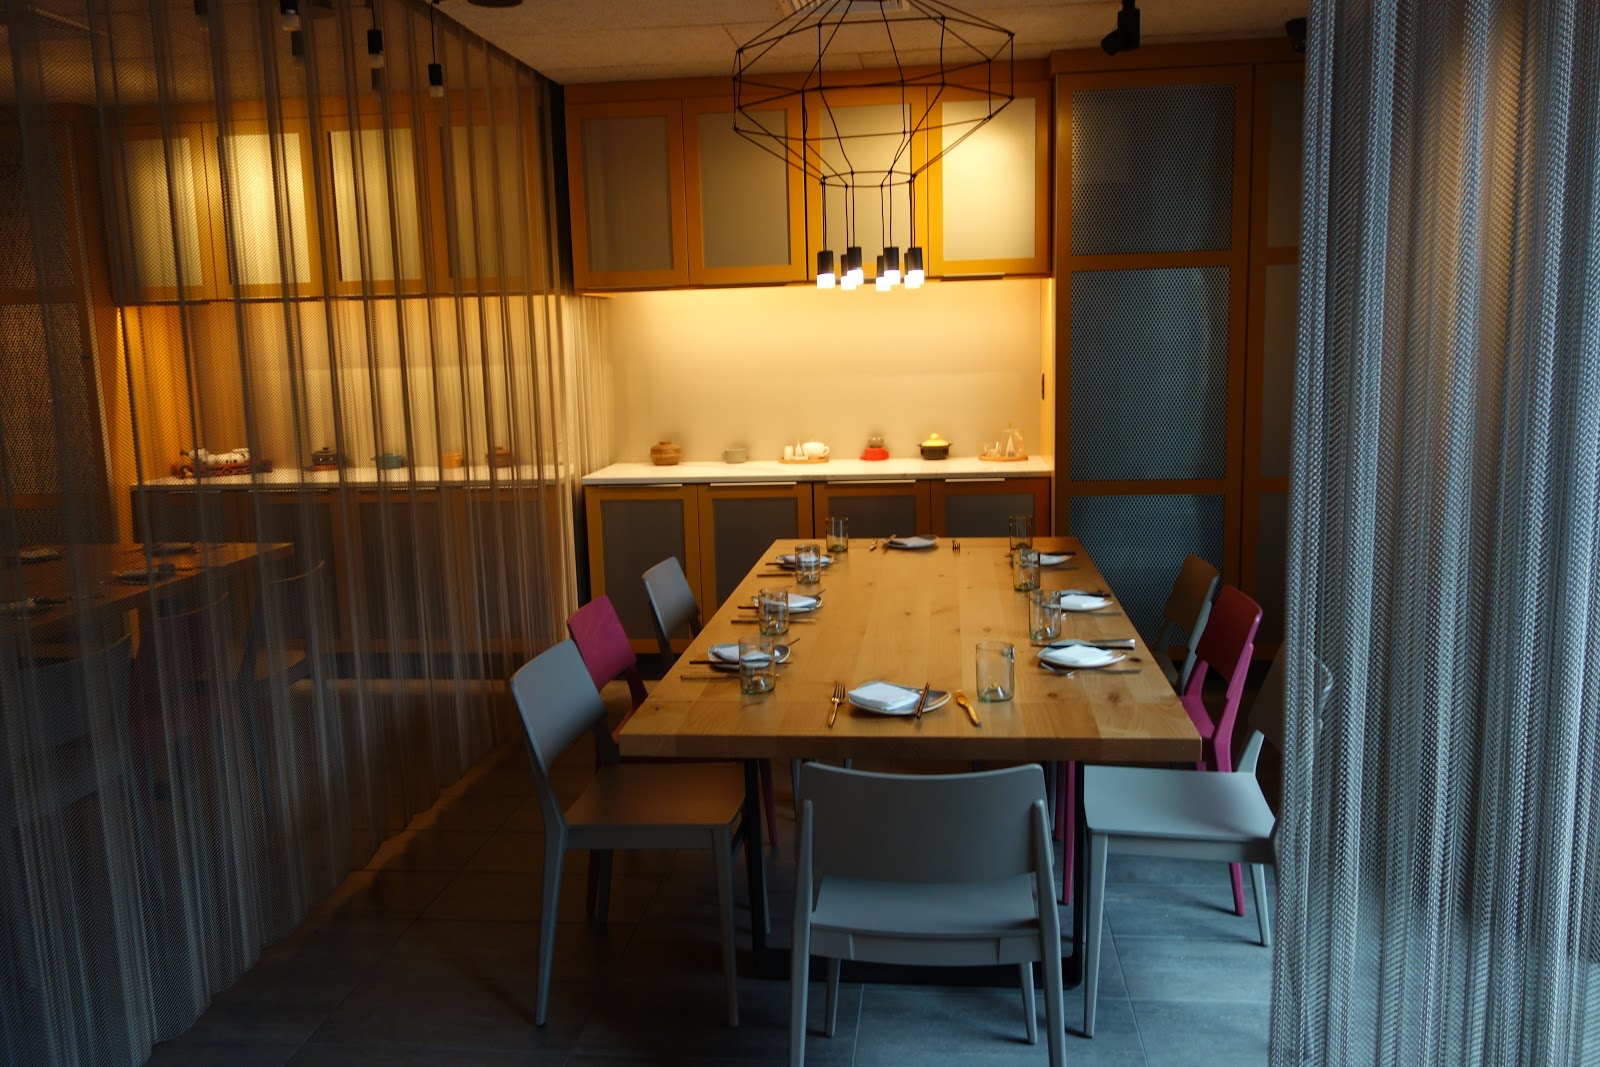 The Passionate Foodie: Sumiao Hunan Kitchen: An Impressive ...